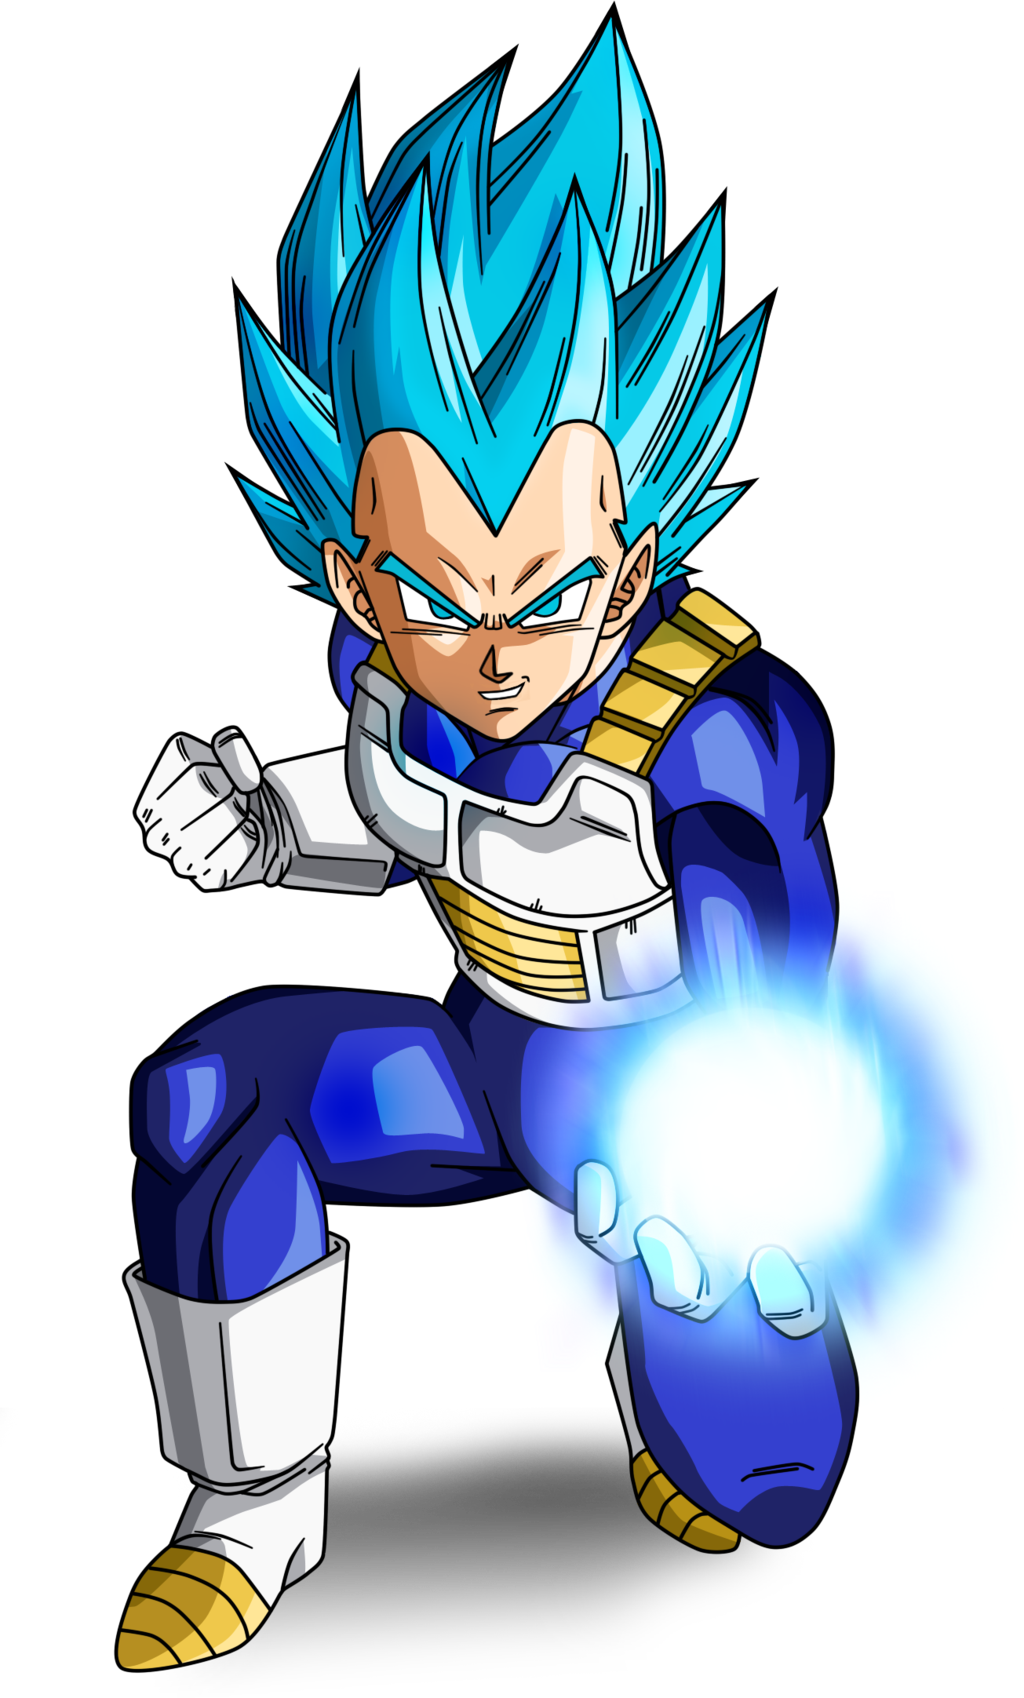 Ssj vegeta png. Image blue full power